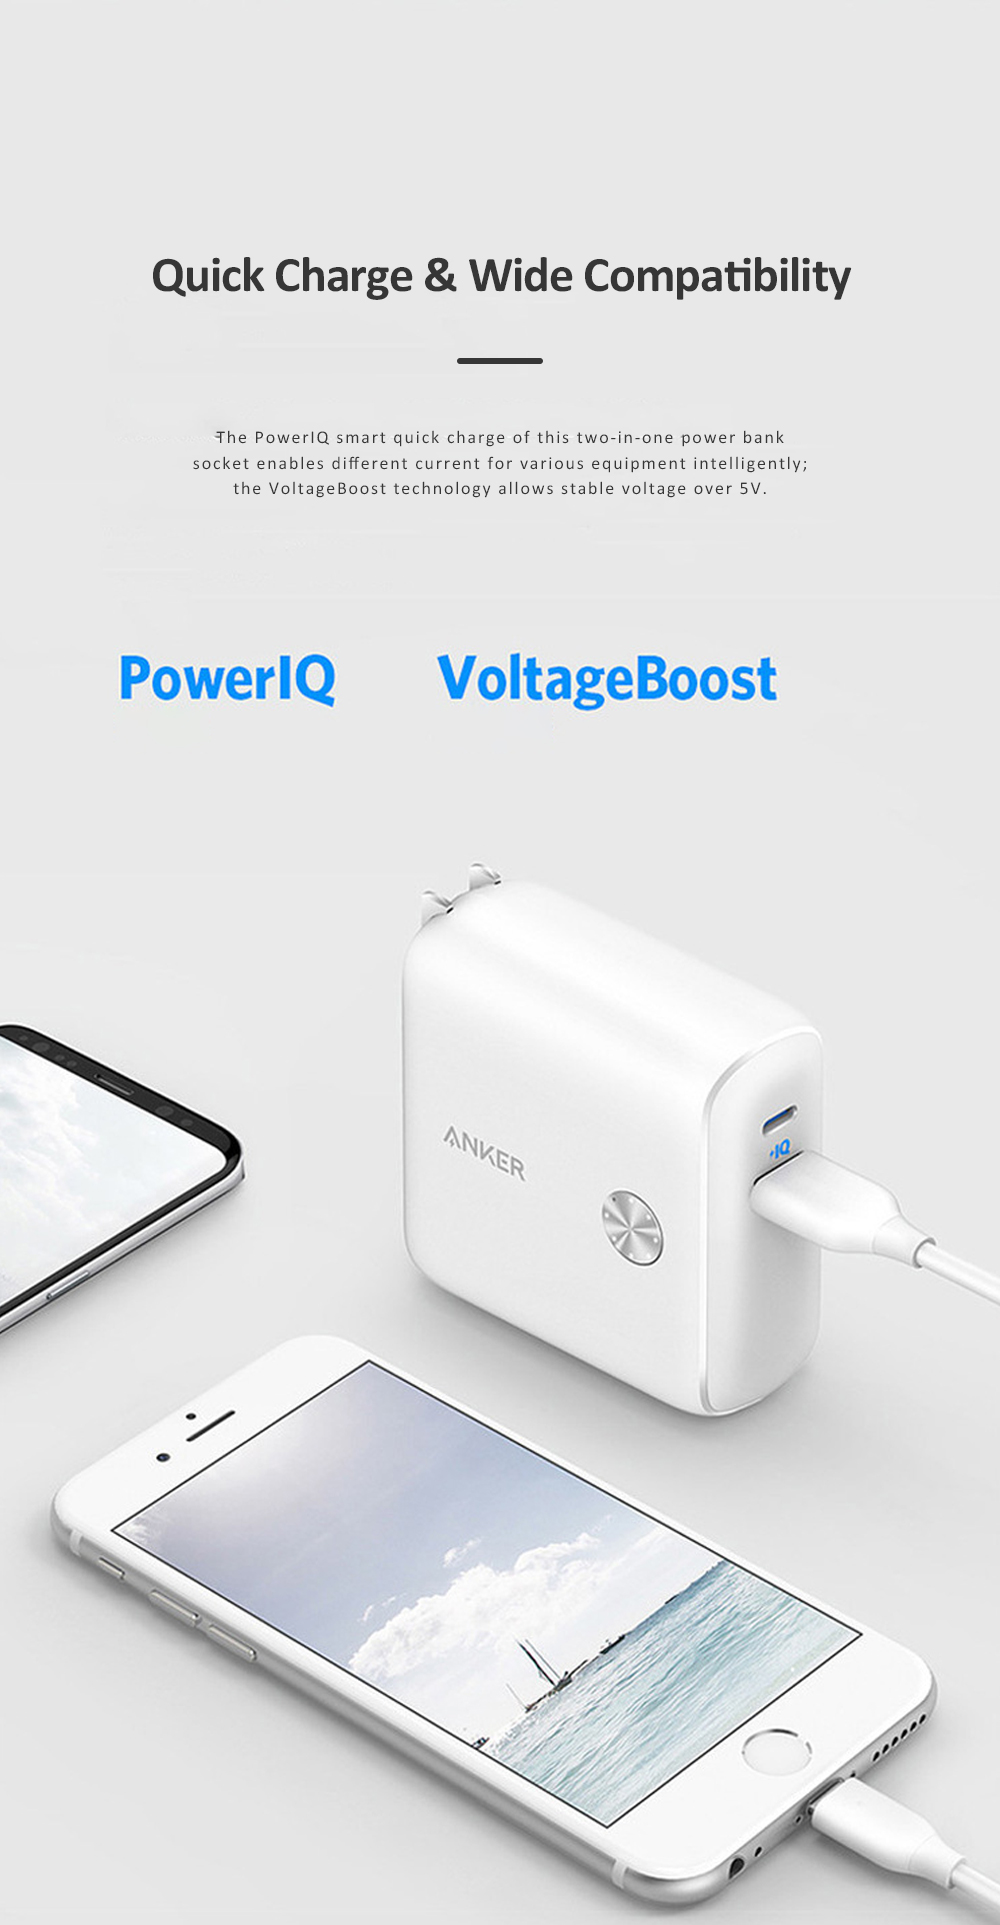 Anker 2 in 1 Power Bank Station Socket for Outdoors Travelling Quick Charge Portable Recharge Switch Power Socket 3